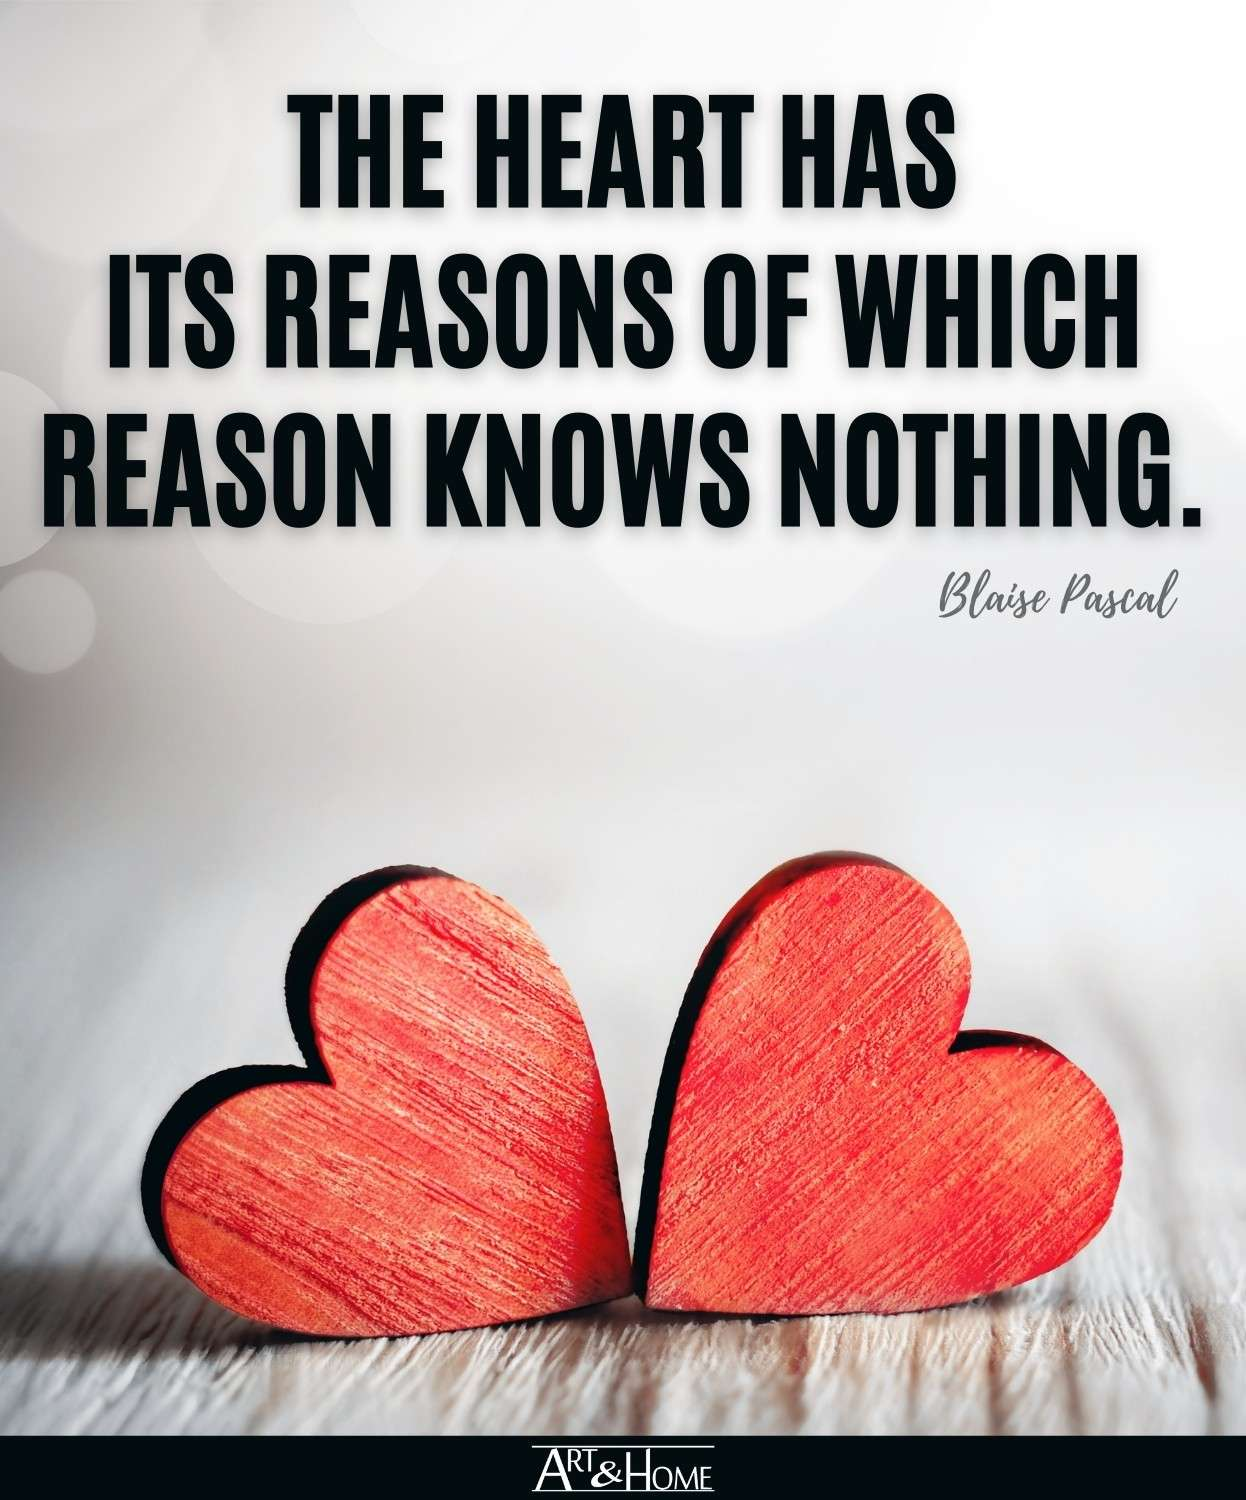 Blaise Pascal Quote About the Heart